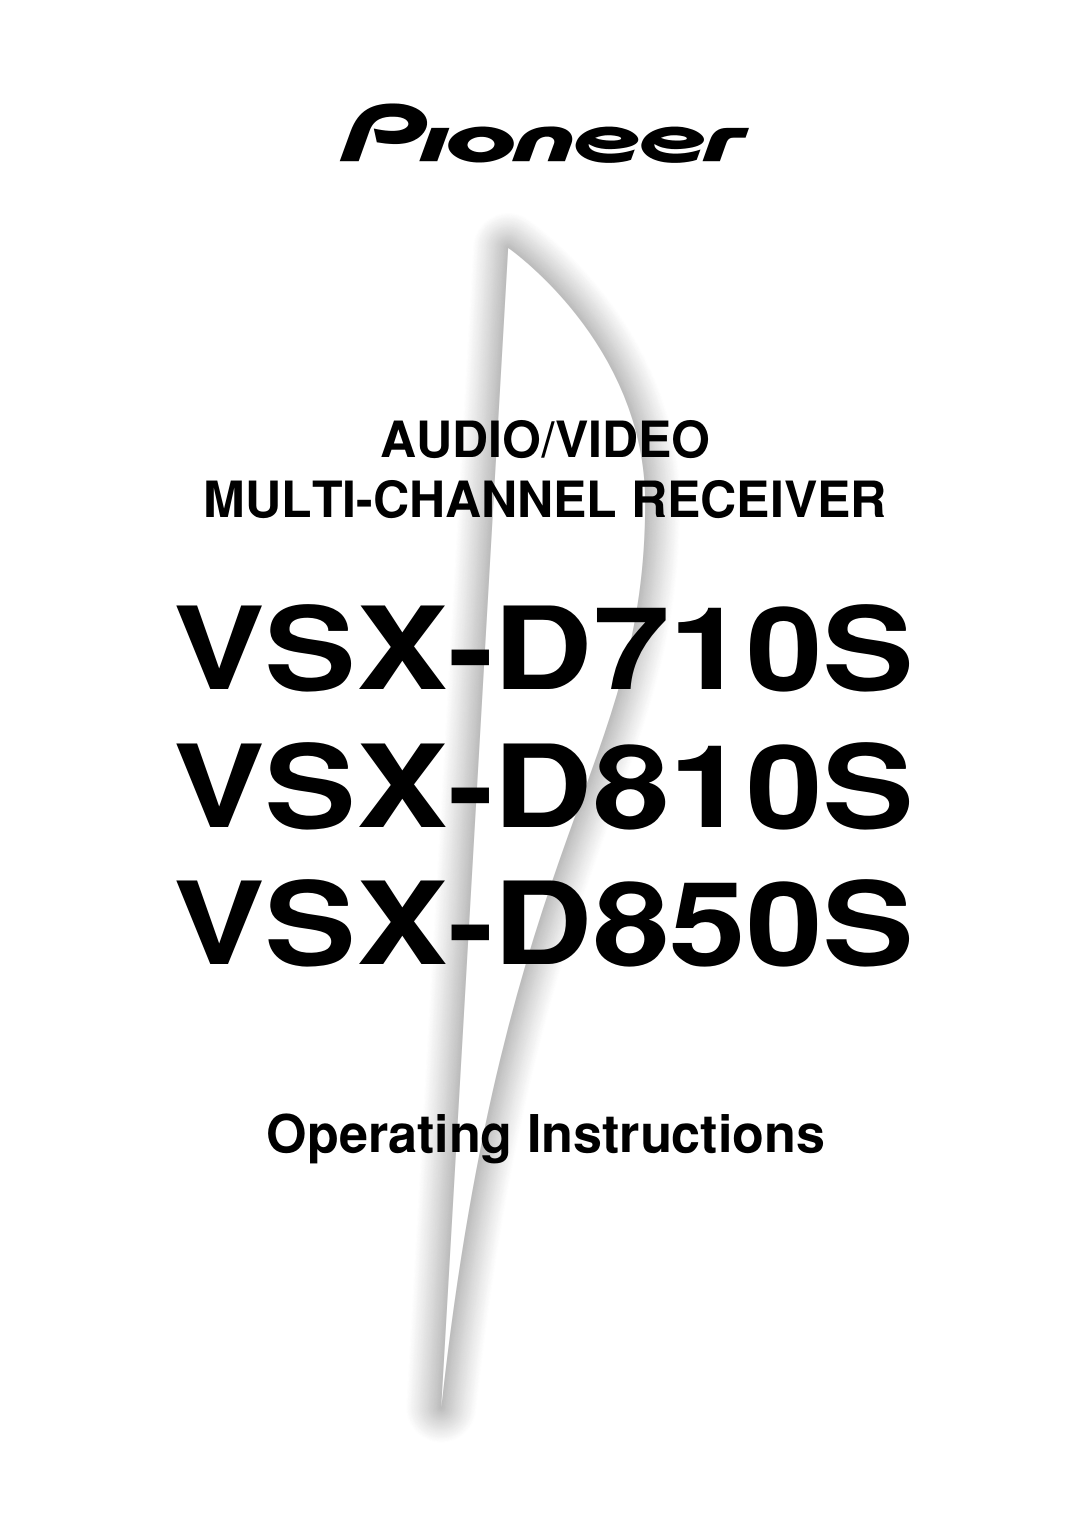 Download free pdf for pioneer vsx d710s receiver manual pdf for pioneer receiver vsx d710s manual fandeluxe Gallery